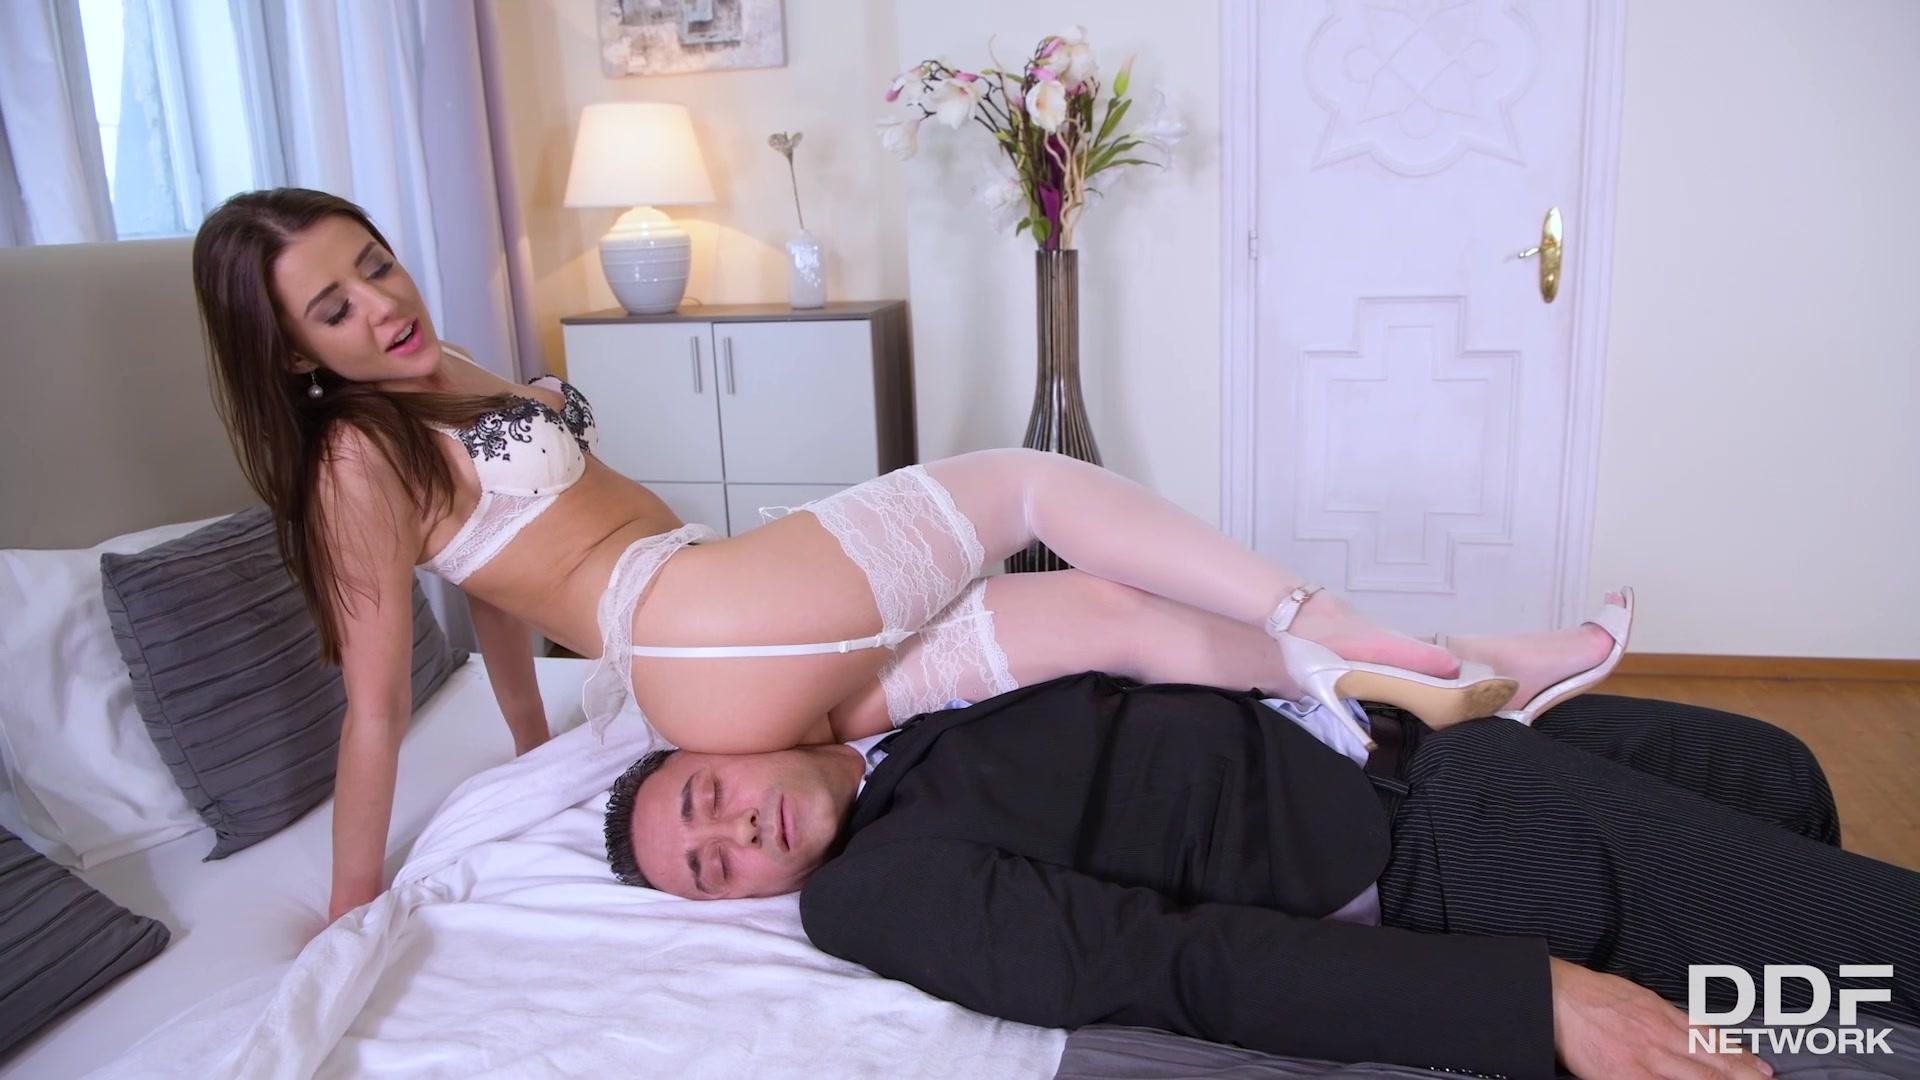 Hot Legs And Feet – Sybil Sexy Teen In Seduction Mode